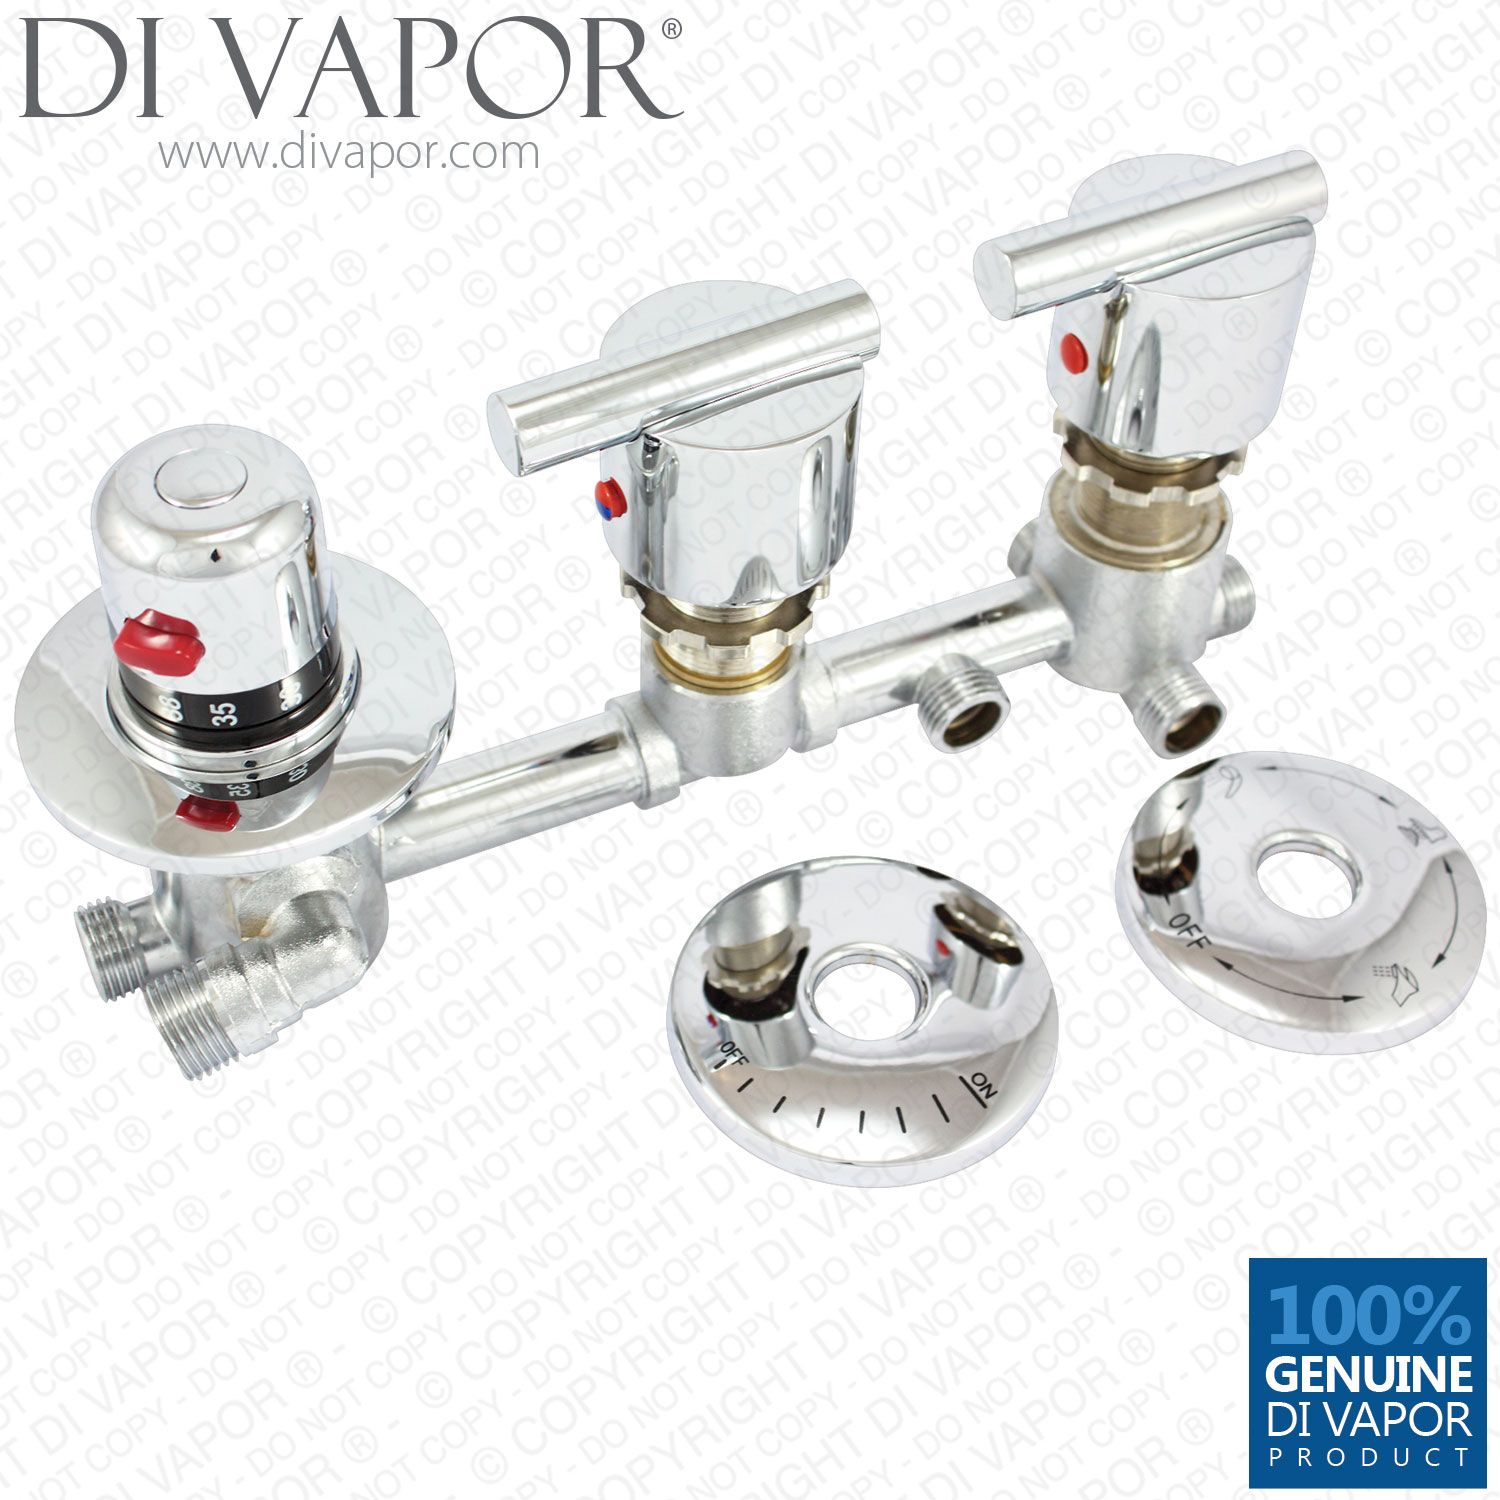 4 Way Diverter Tap Set W/ Thermostatic Valve (Profile)